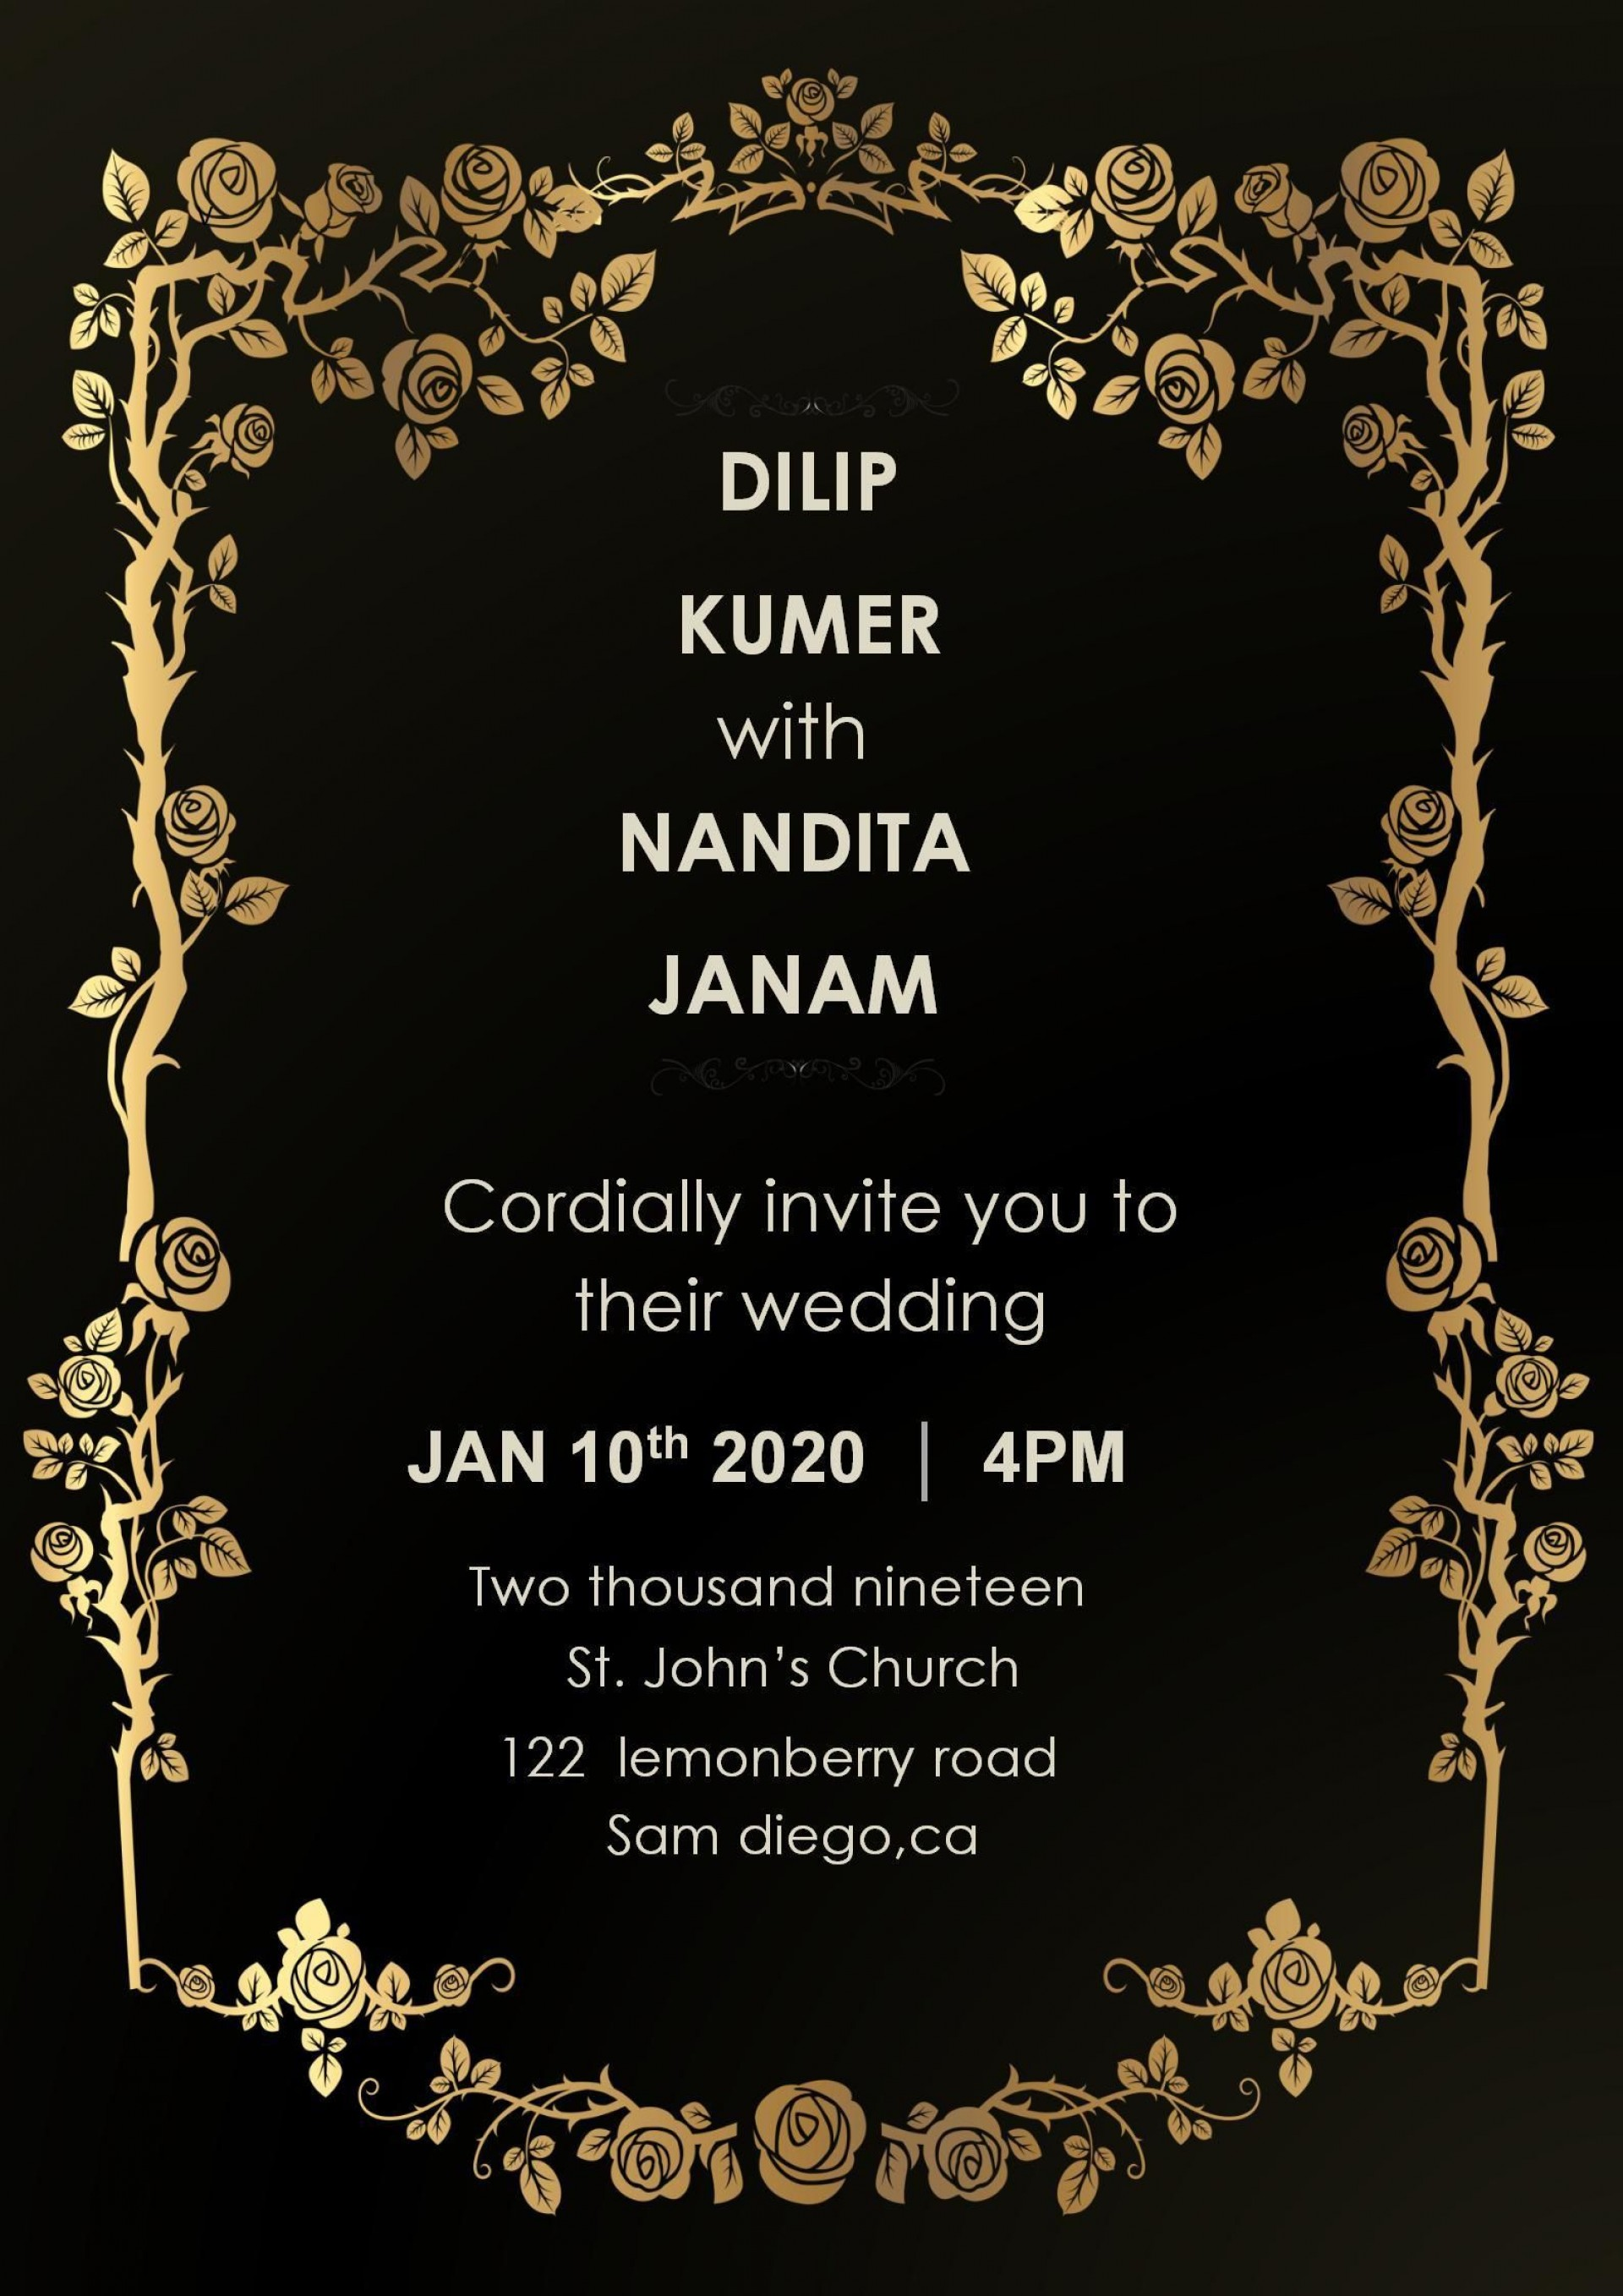 002 Stirring Free Download Invitation Card Template Photo  Templates Indian Wedding Design Software Png1920